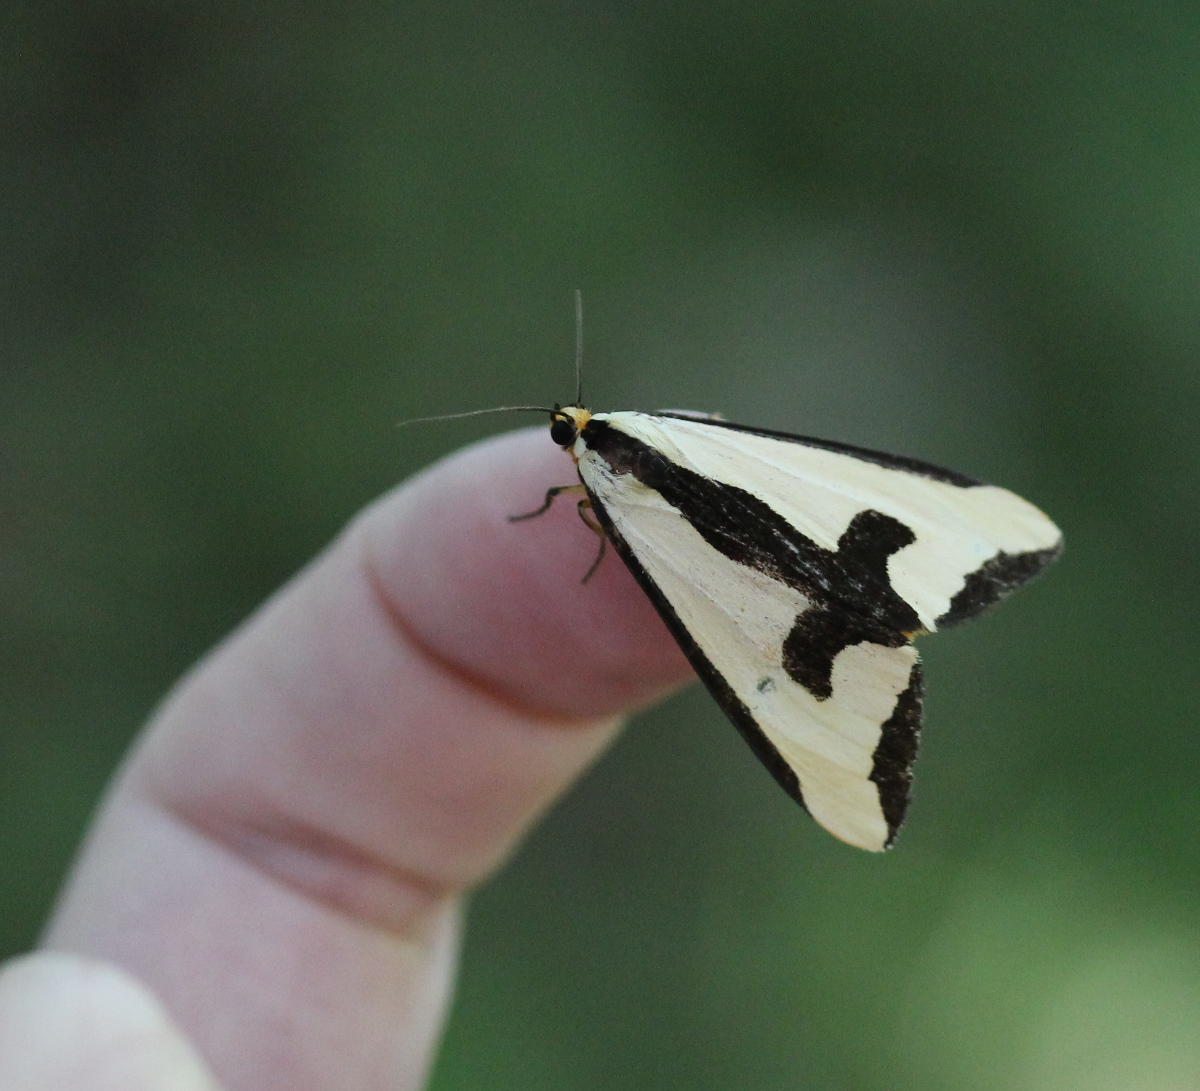 triangular yellow/black moth on fingertip